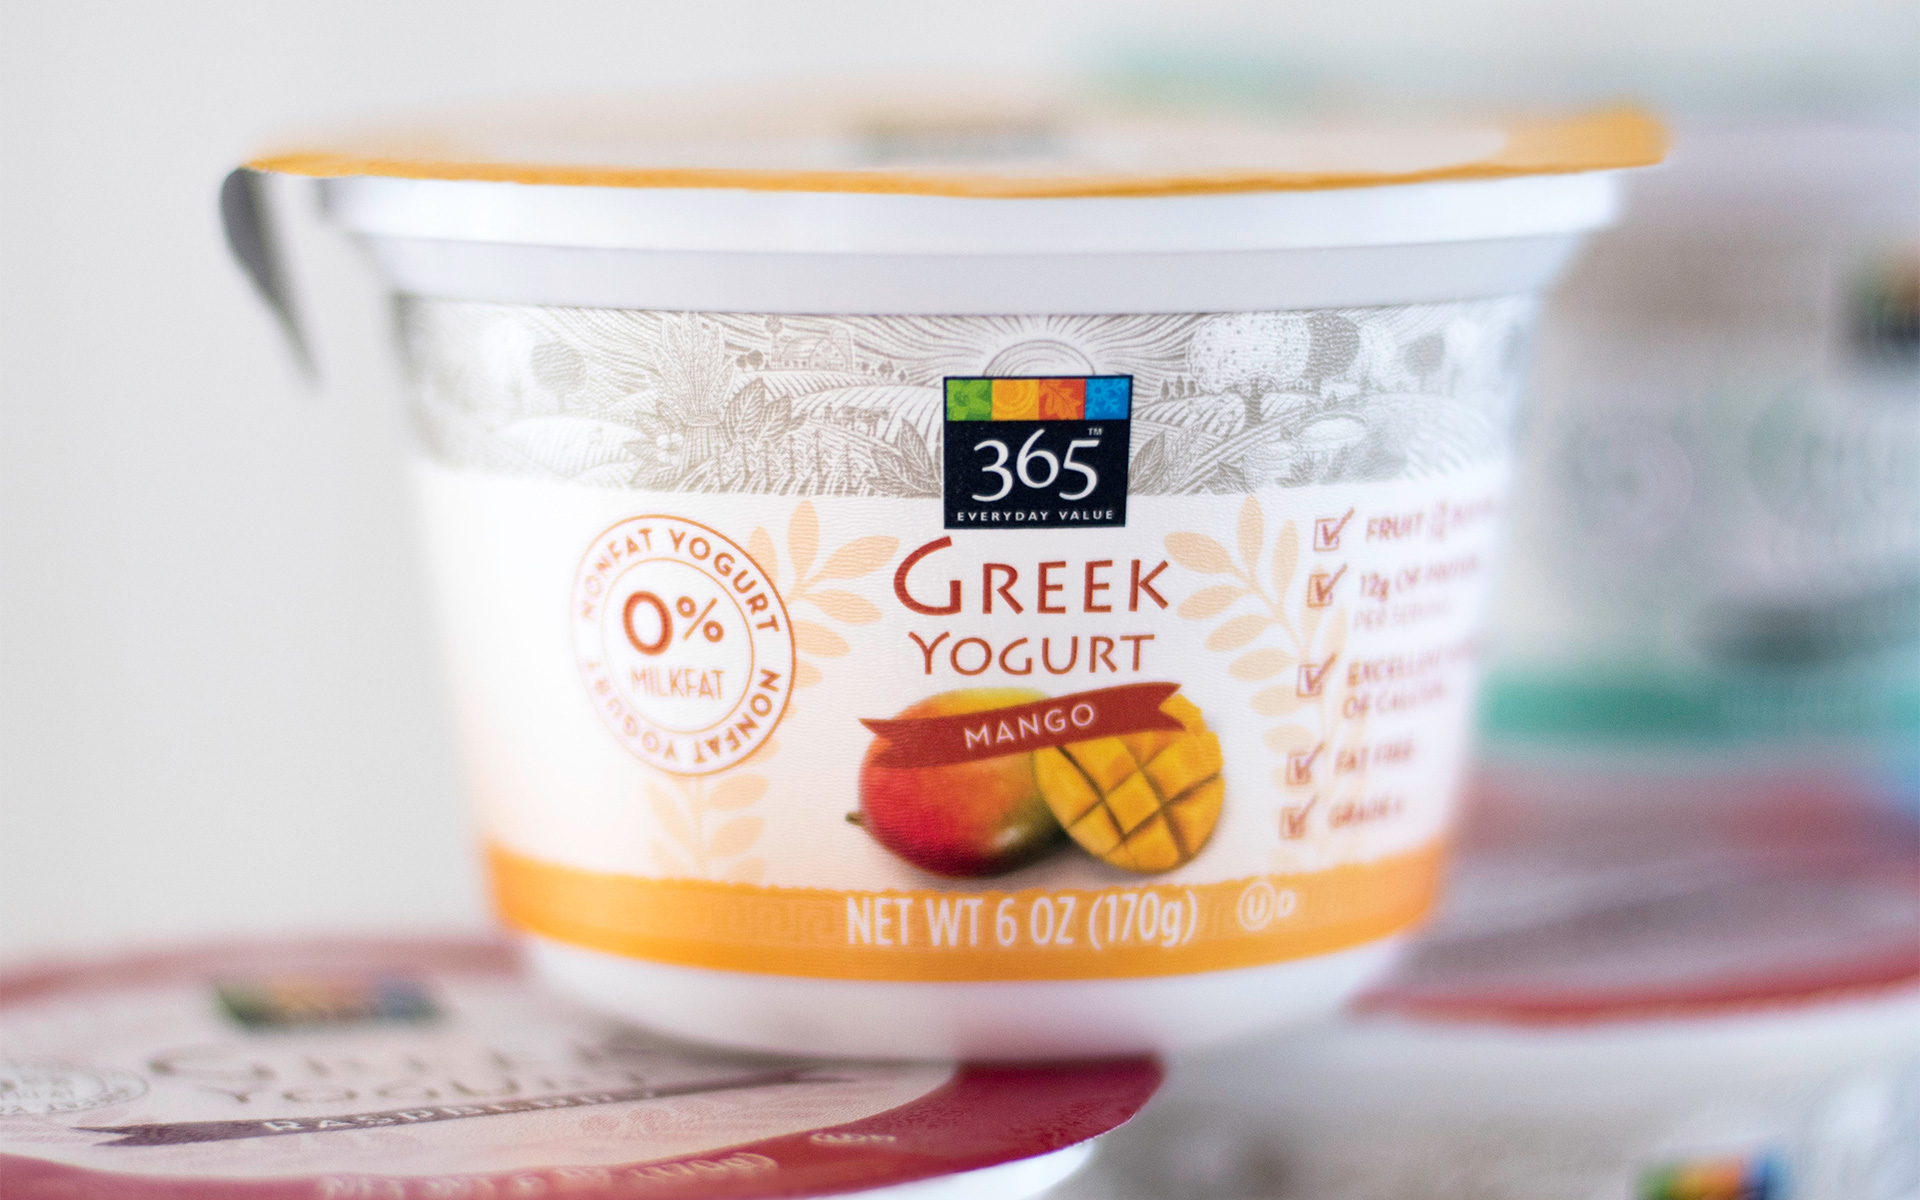 Whole Foods Market 365 Mango Yogurt